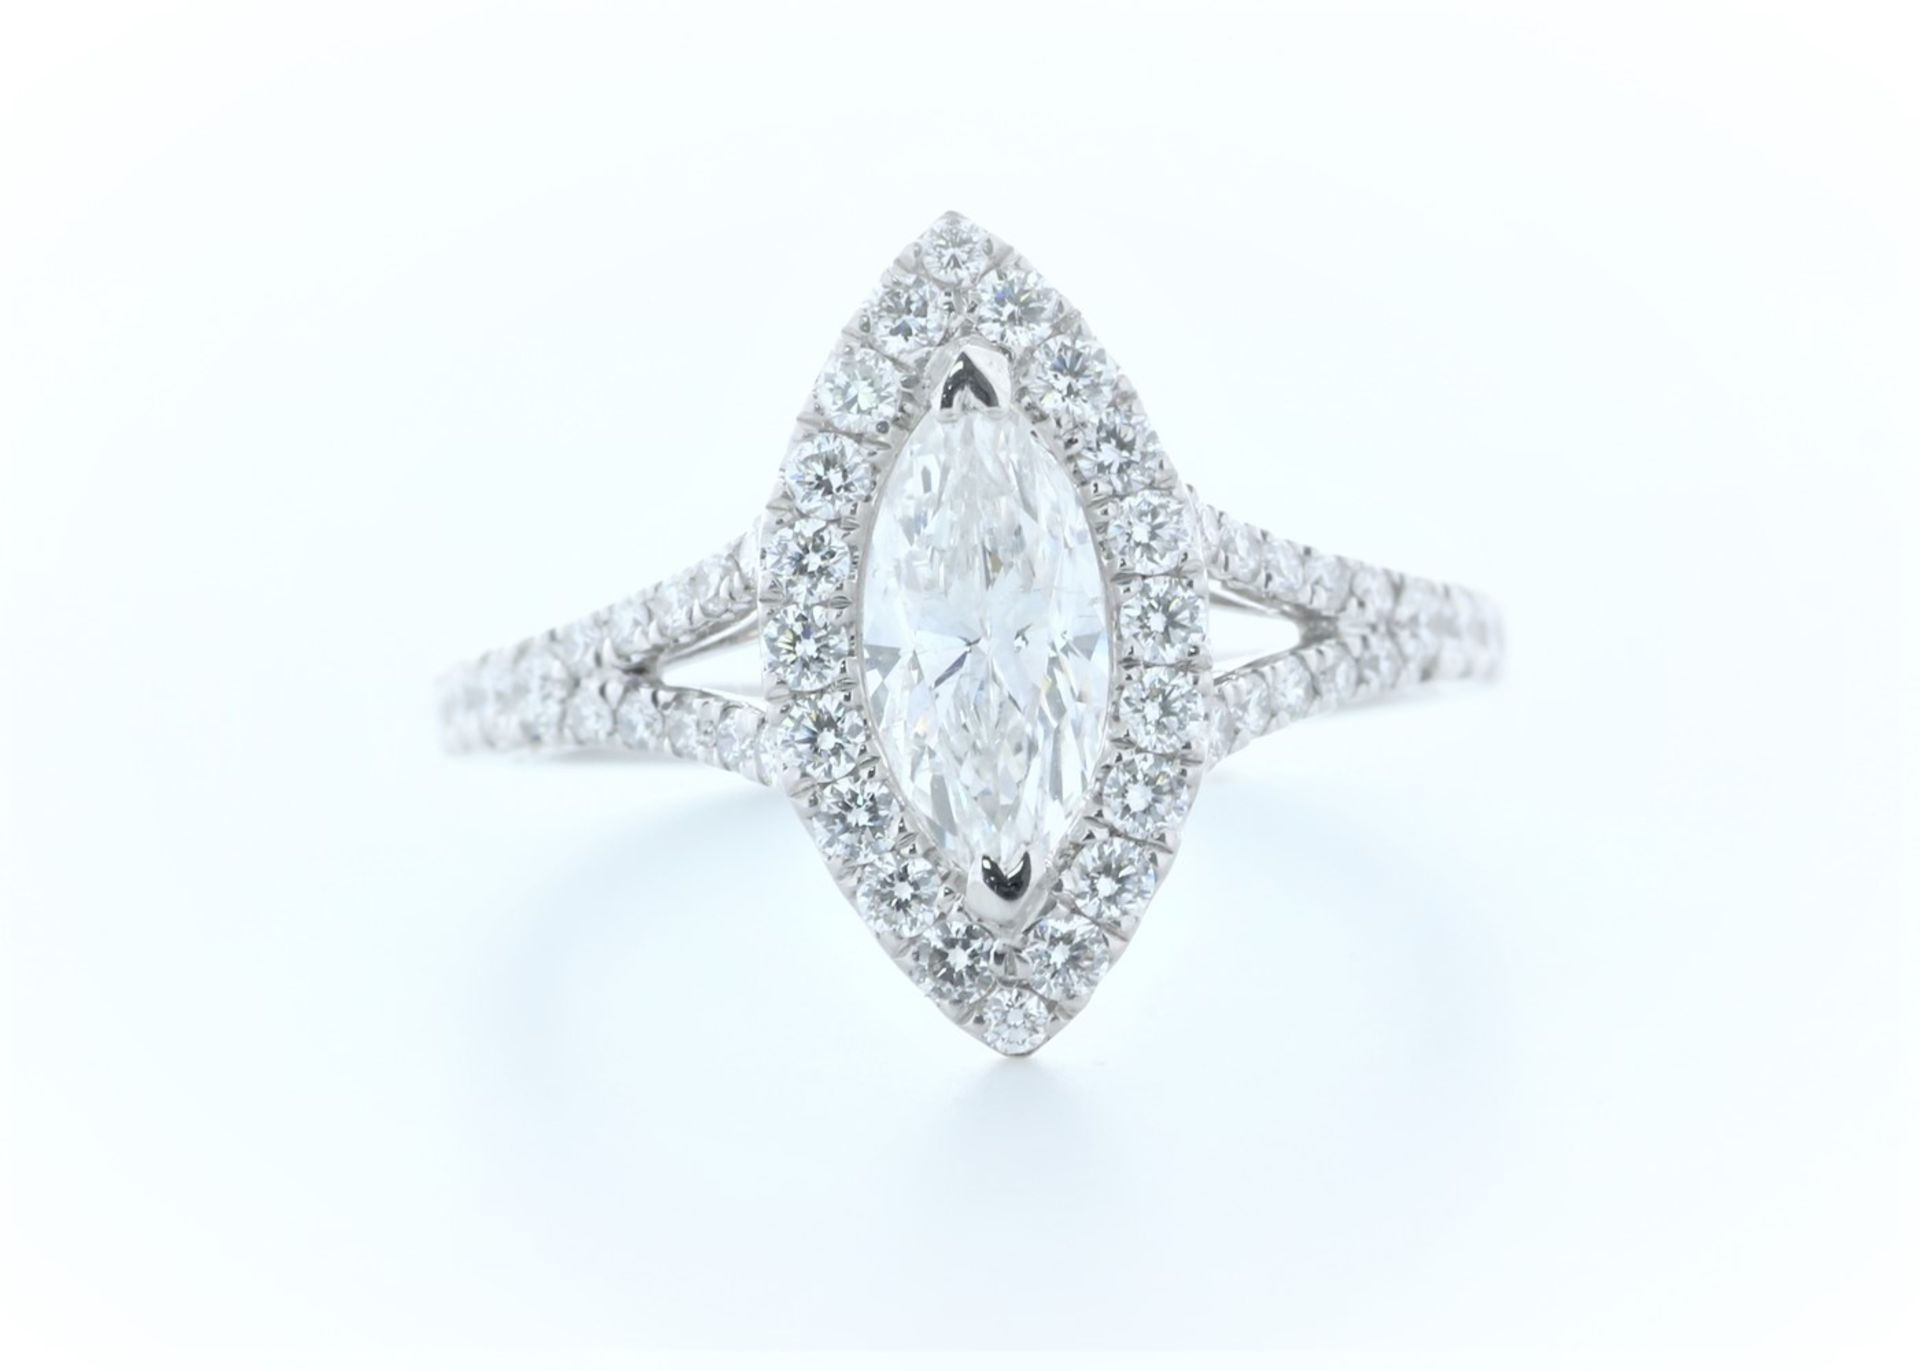 18ct White Gold Single Stone With Halo Setting Ring 1.56 (0.90) Carats - Valued by IDI £16,000.